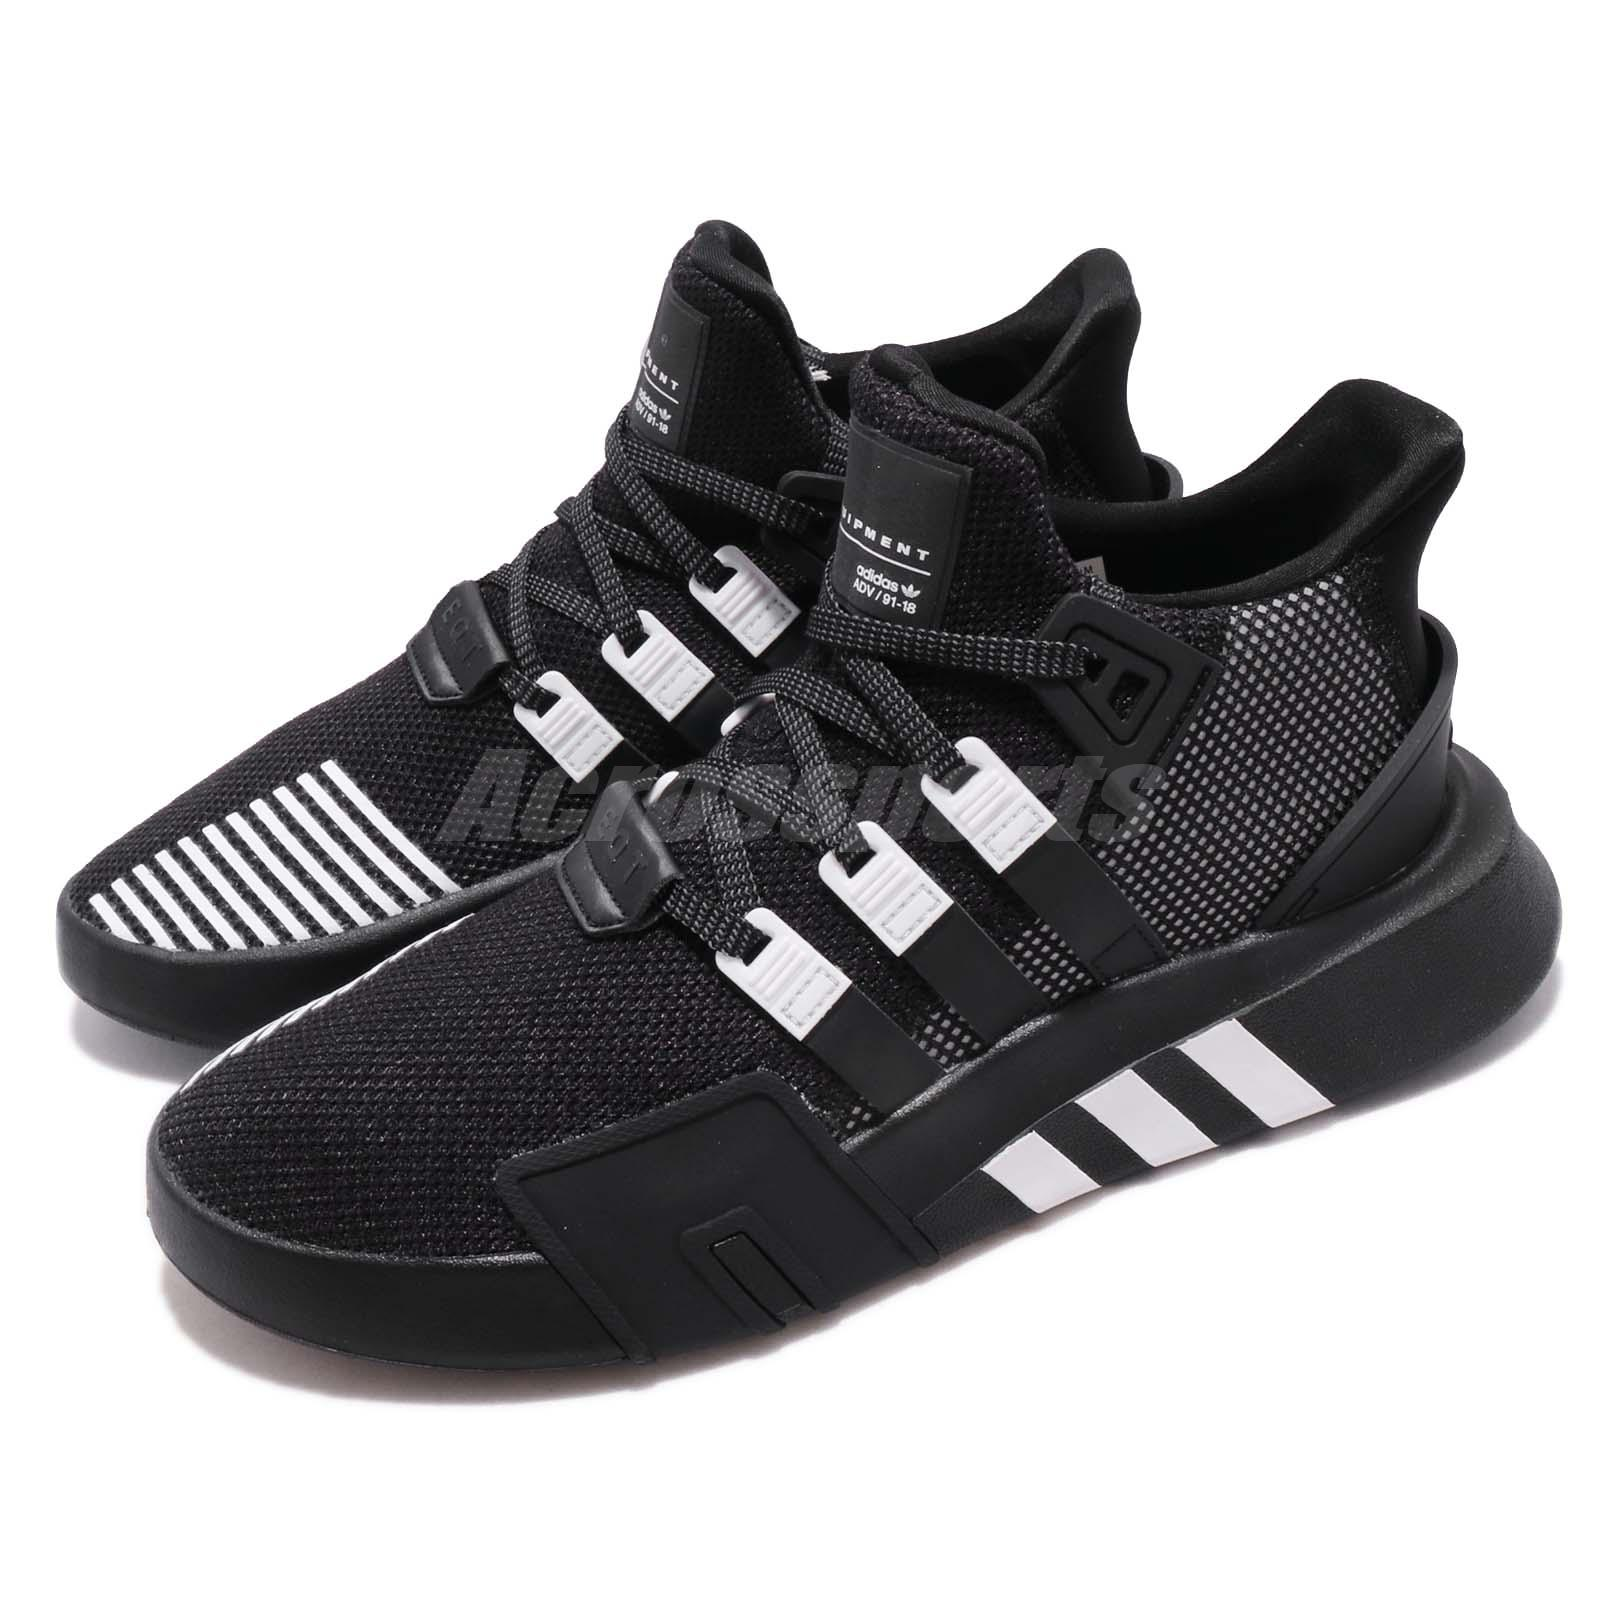 new arrival 4d806 703b6 Details about adidas Originals EQT Bask ADV Black White Men Running Casual  Shoe Sneaker BD7773